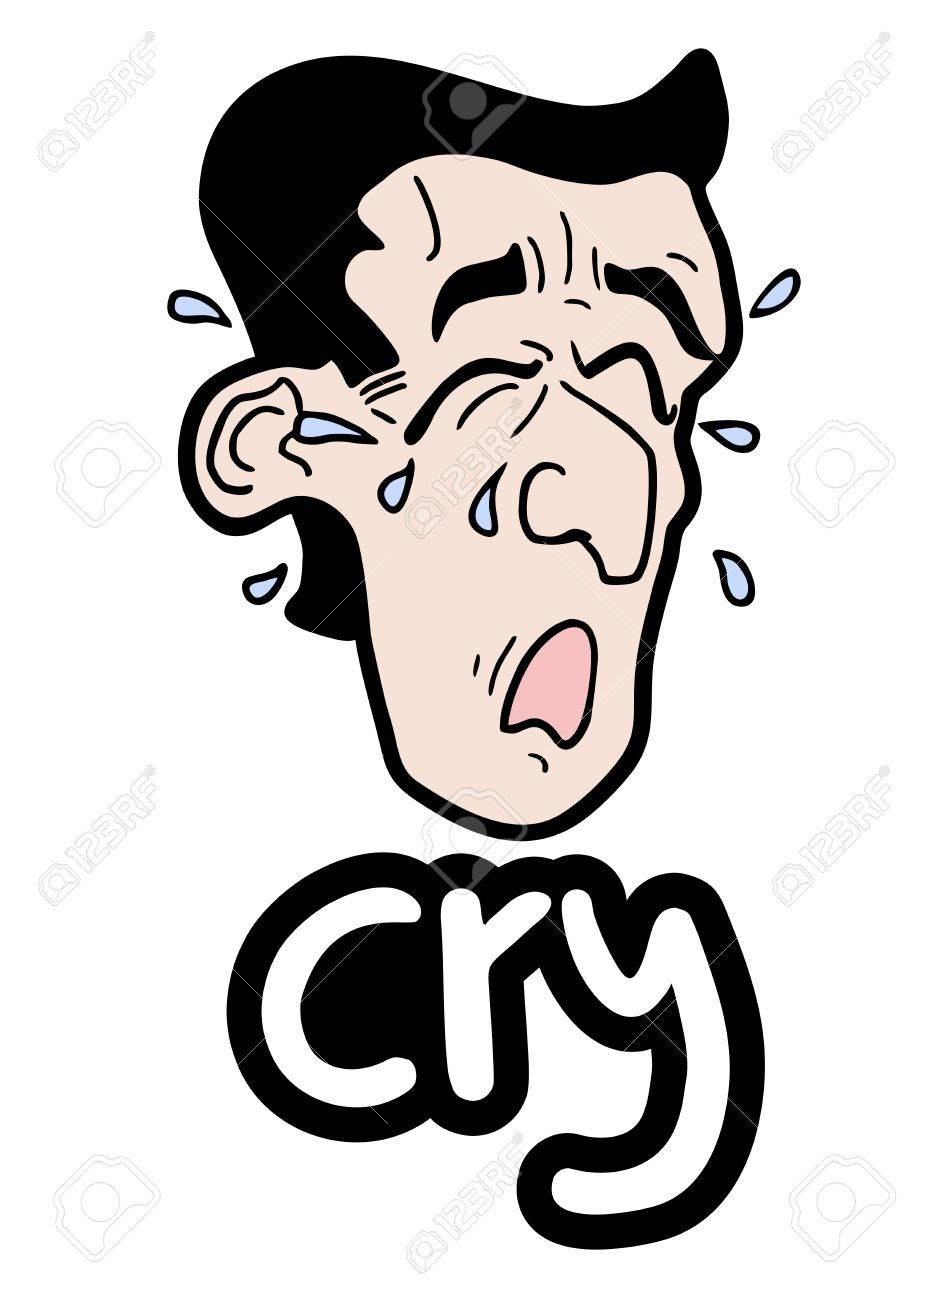 Cry draw man Stock Vector - 18498788